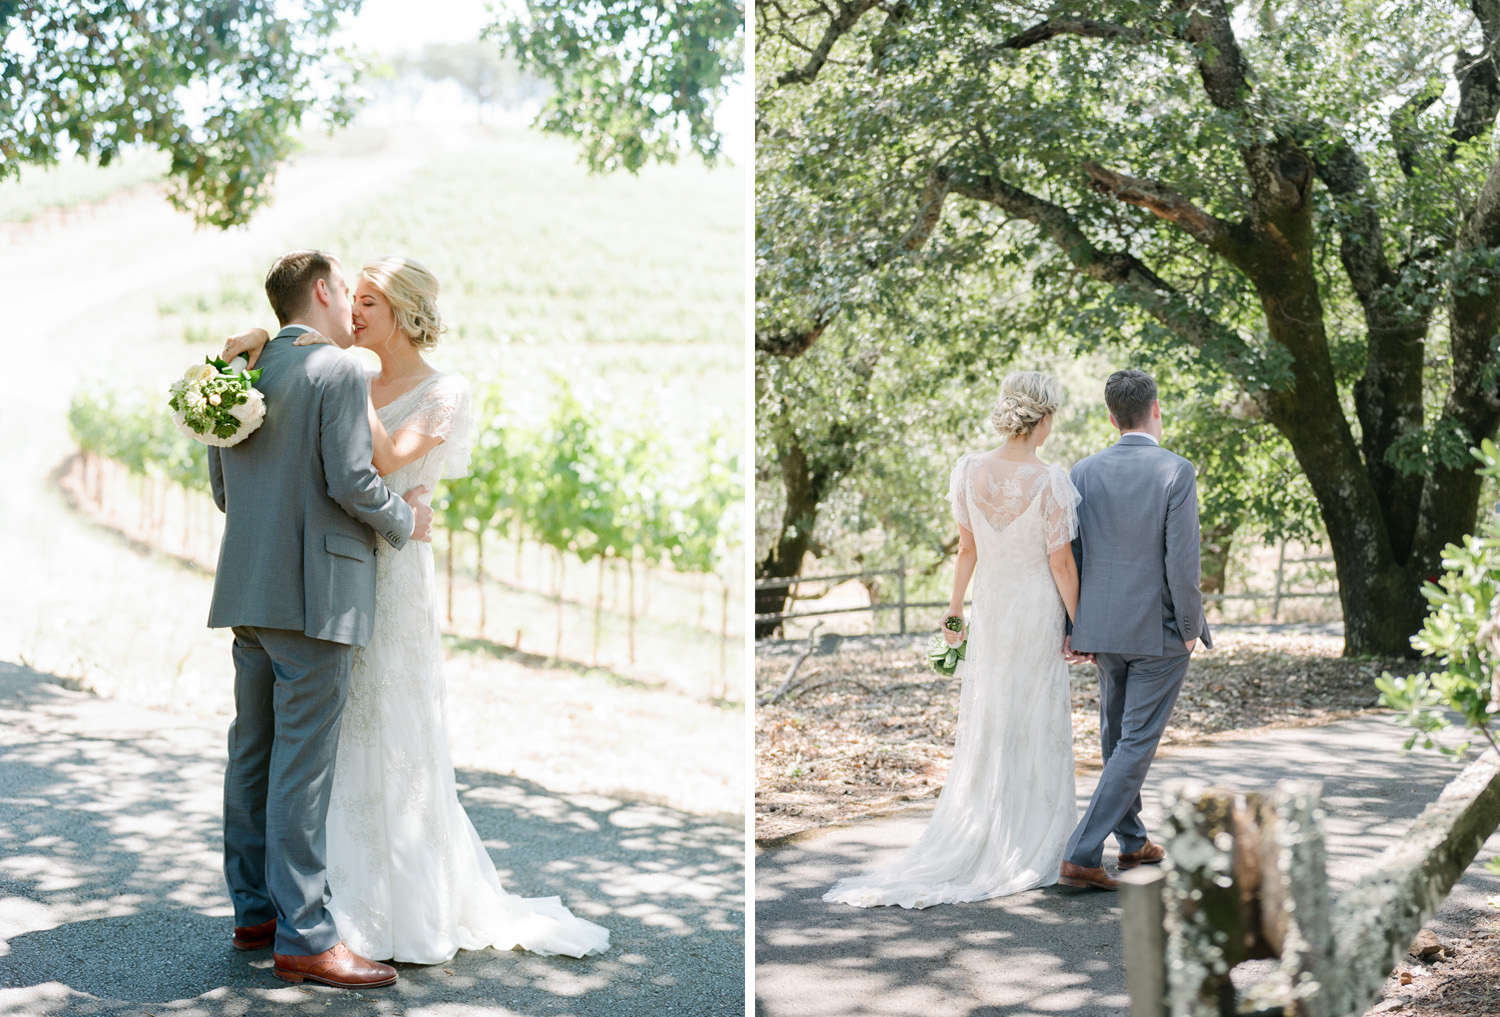 Sylvie-Gil-film-destination-wedding-photography-kunde-winery-napa-shabby-chic-first-look.jpg